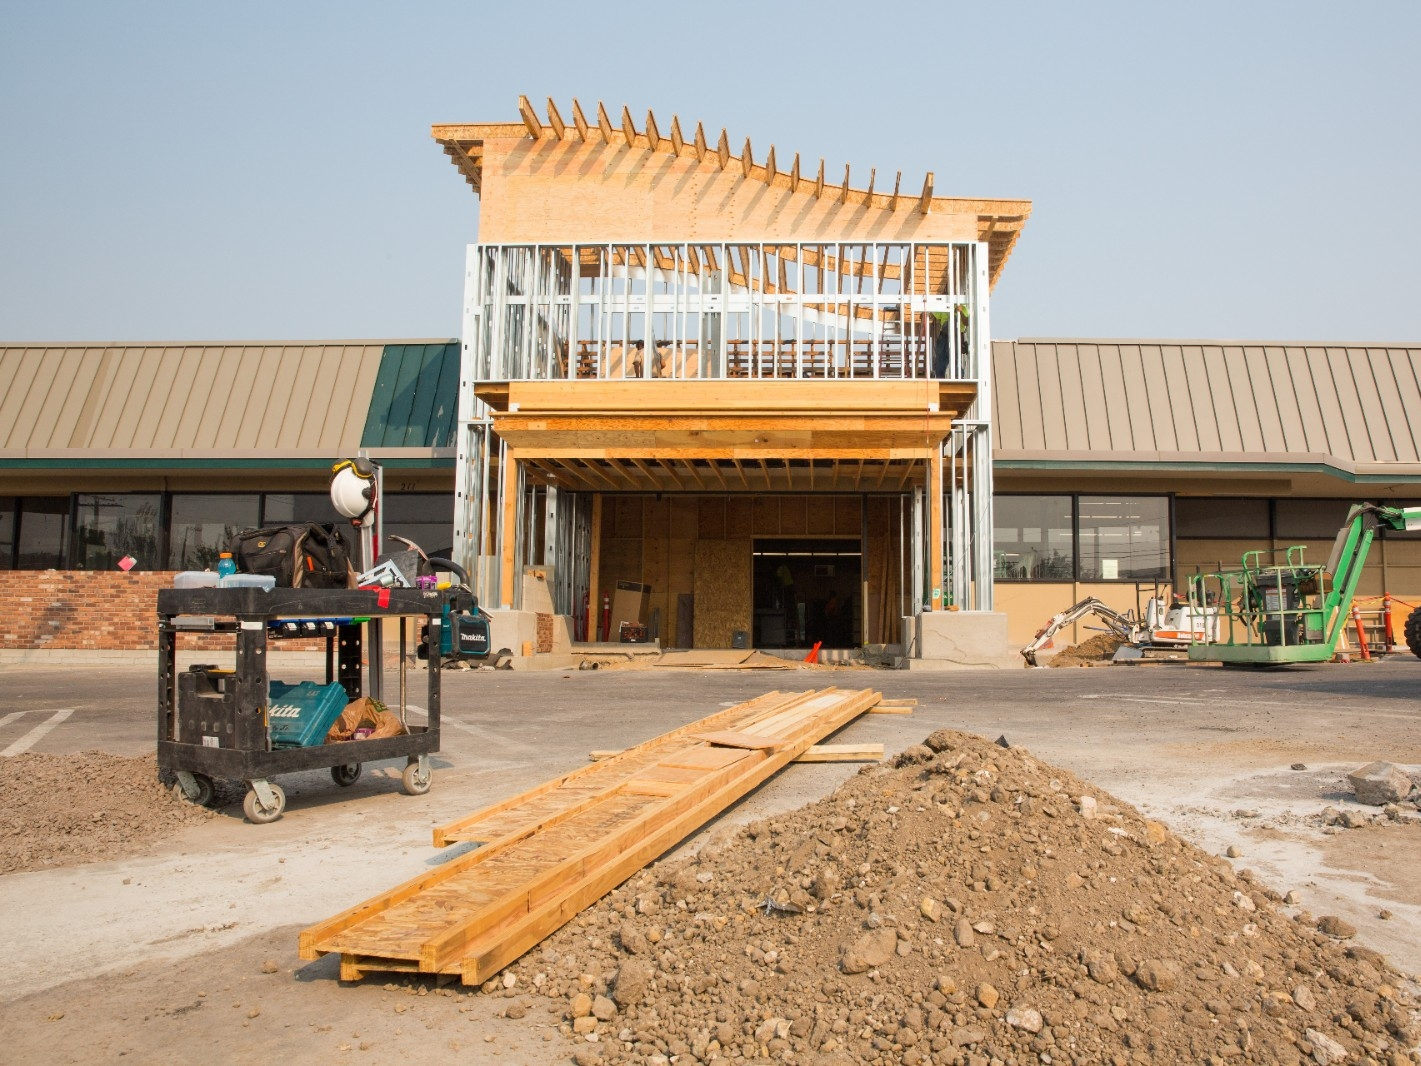 Construction takes place at a strip mall.